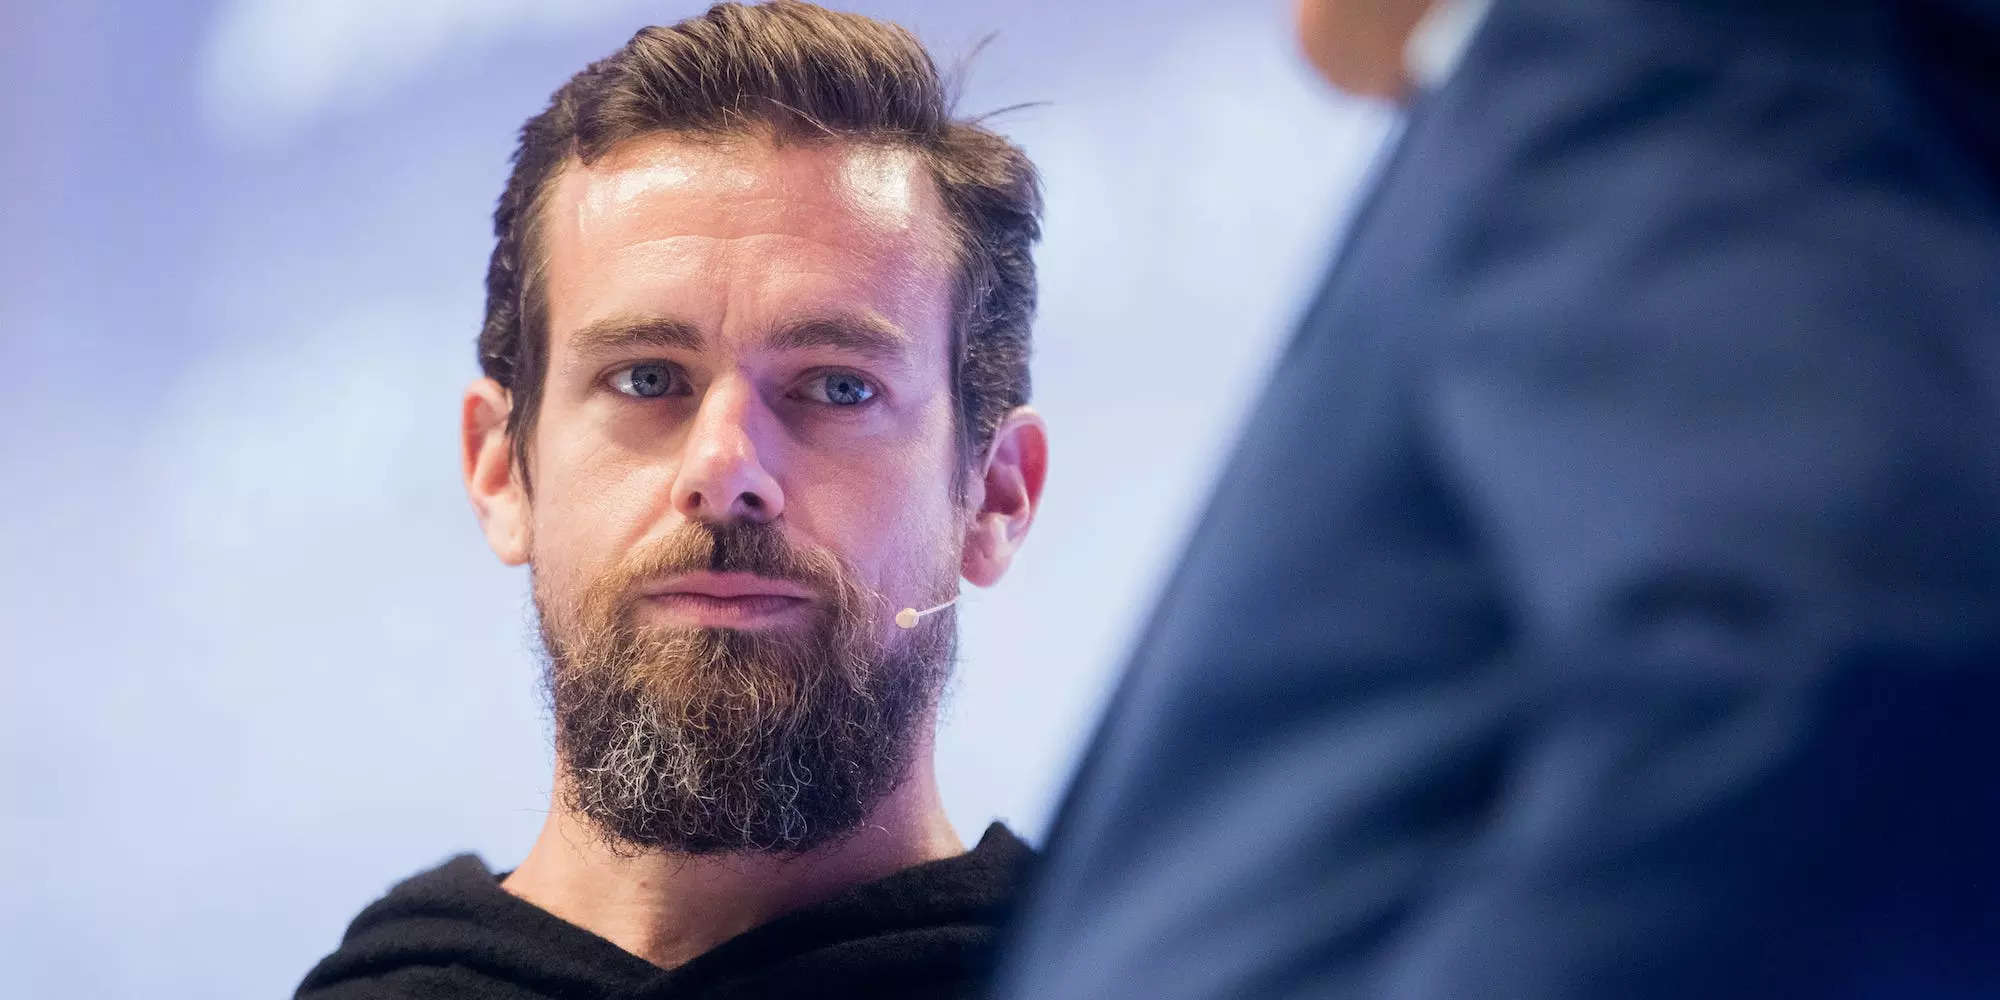 Twitter will pay $809 million to settle a class-action securities lawsuit it misled investors about user engagement